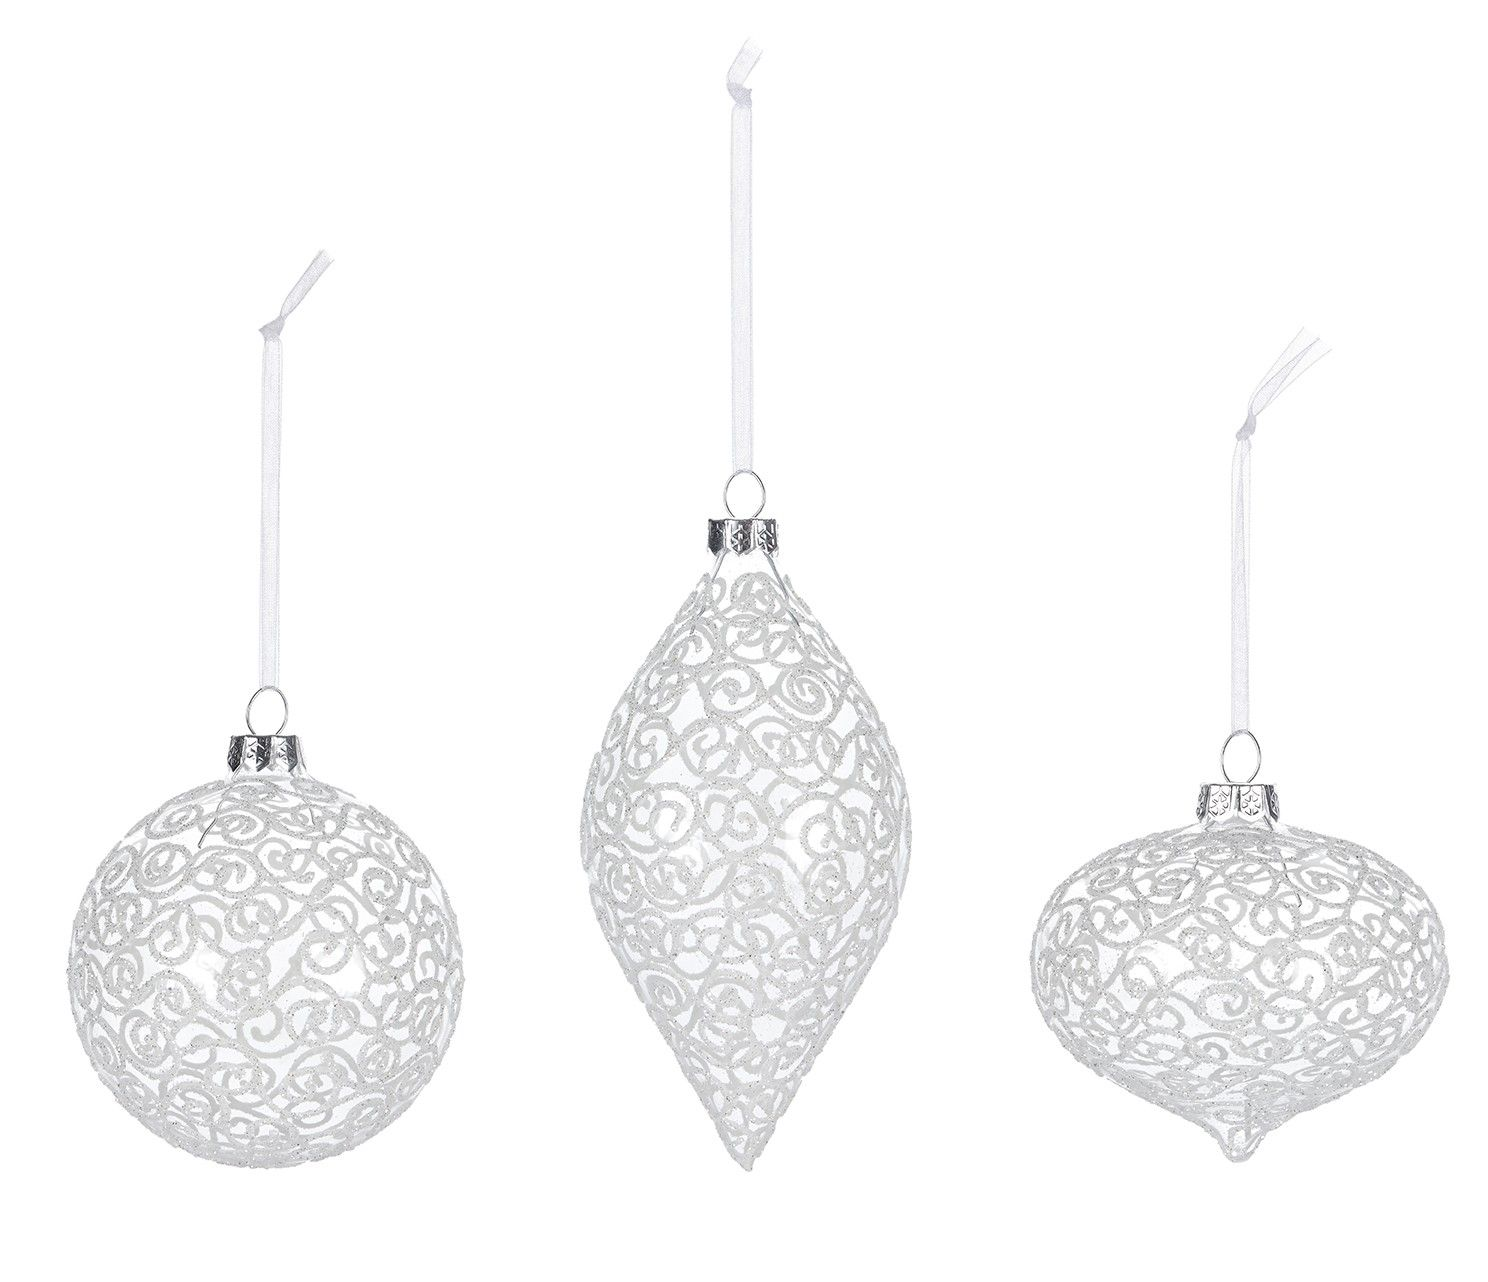 #merrybrissmas www.brissi.com A set of 3 luxury Christmas baubles in 3 classic shapes round, onion, shallot. These beautiful clear glass decorations feature a white sparkle glitter swirl pattern, and are as glamorous as they are great value. Price £10.00